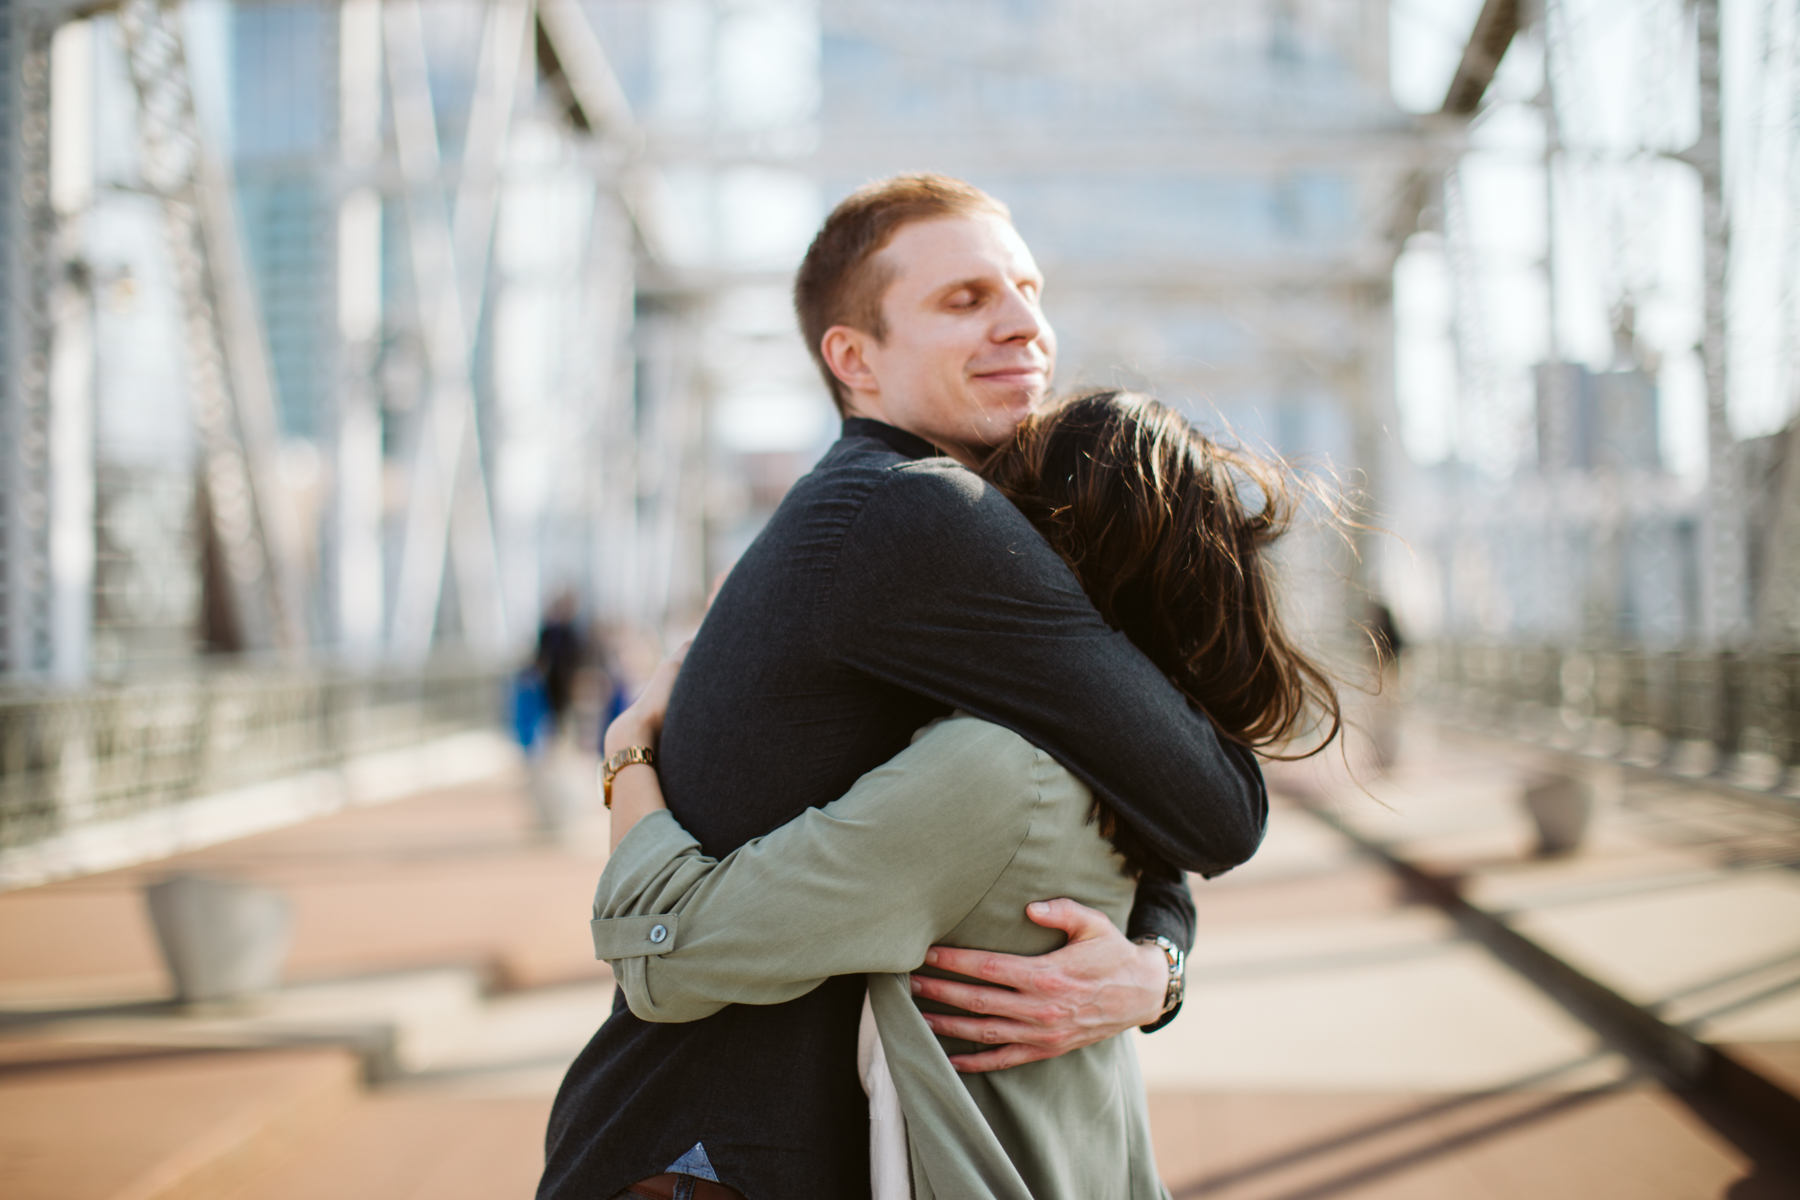 Sunny engagement session on the pedestrian bridge in downtown Nashville, Tennessee